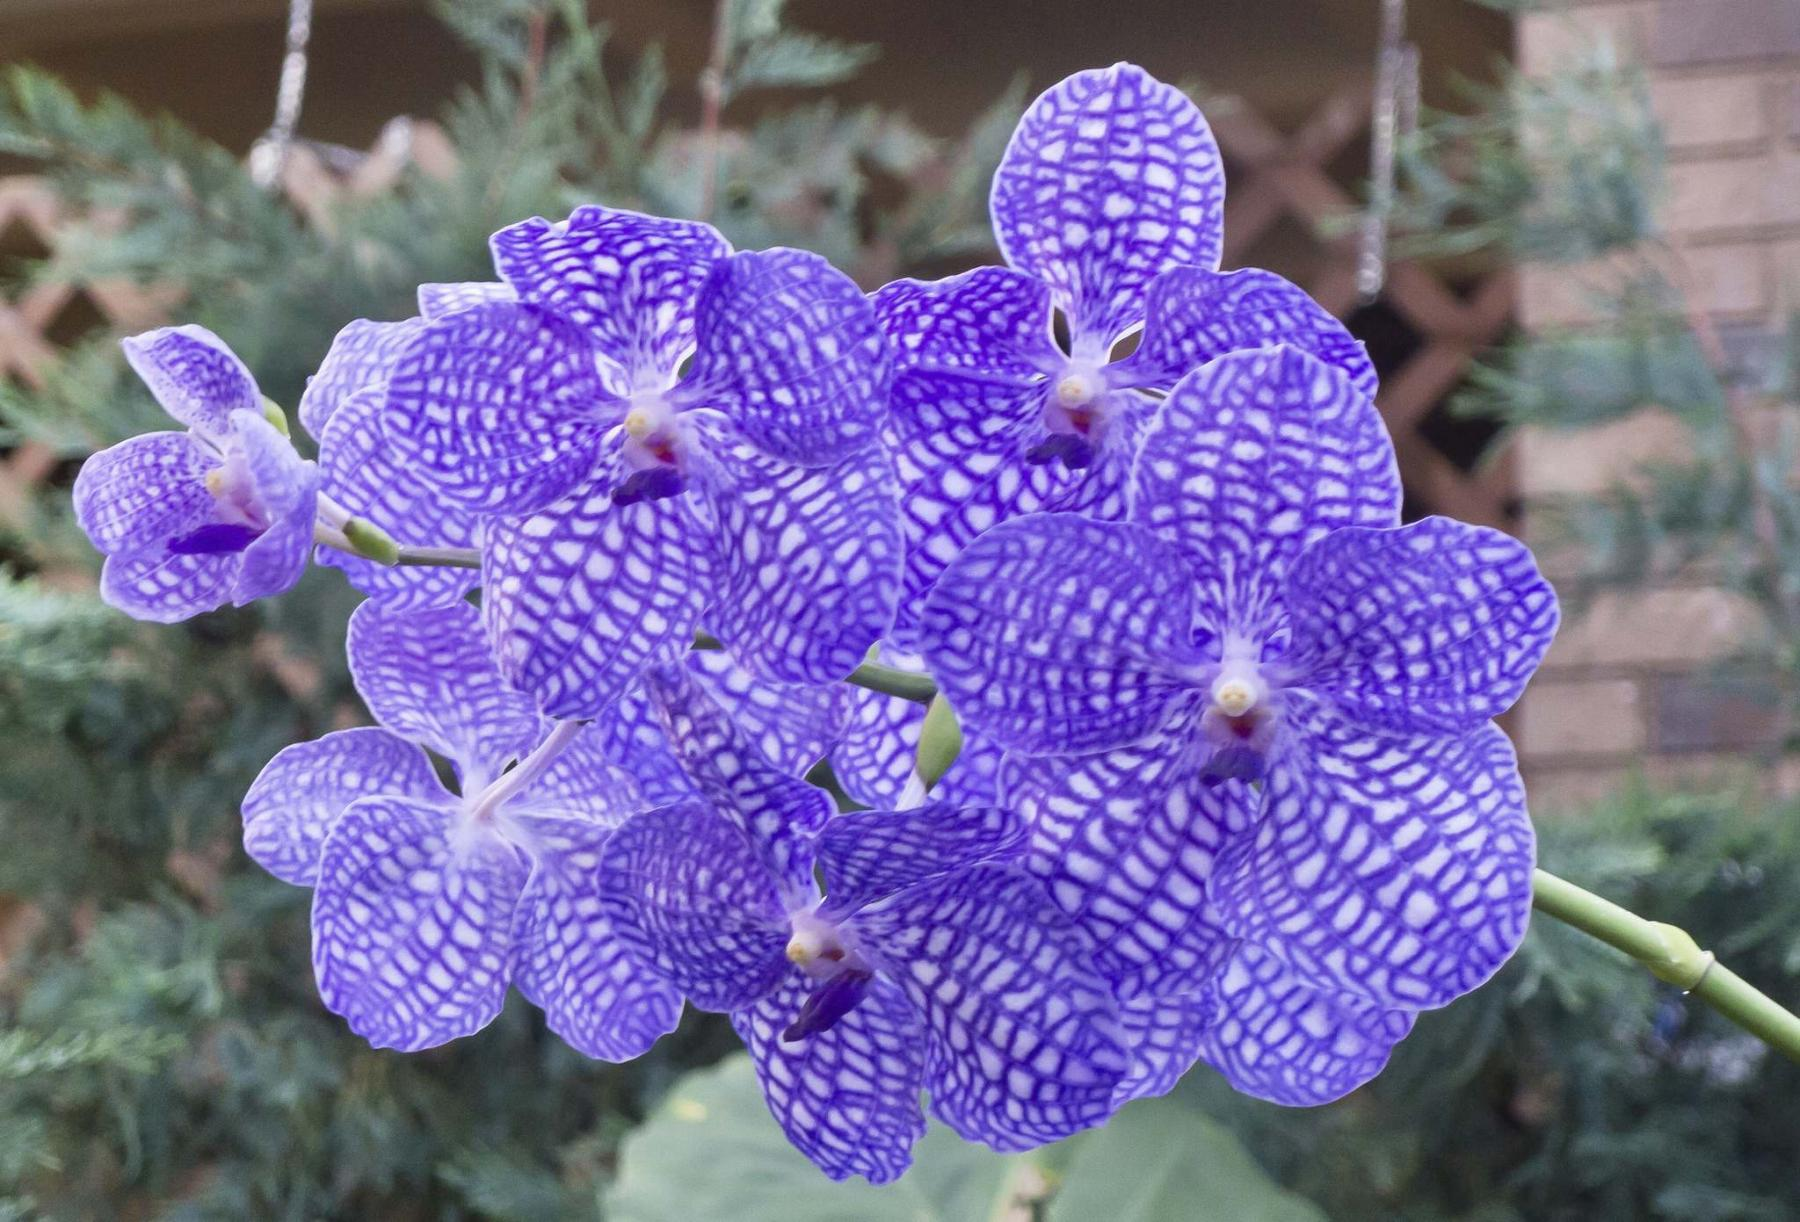 <p>Darlene Stack</p><p>Purple-veined Vanda Robert's Delight orchid is a rare beauty.</p></p>